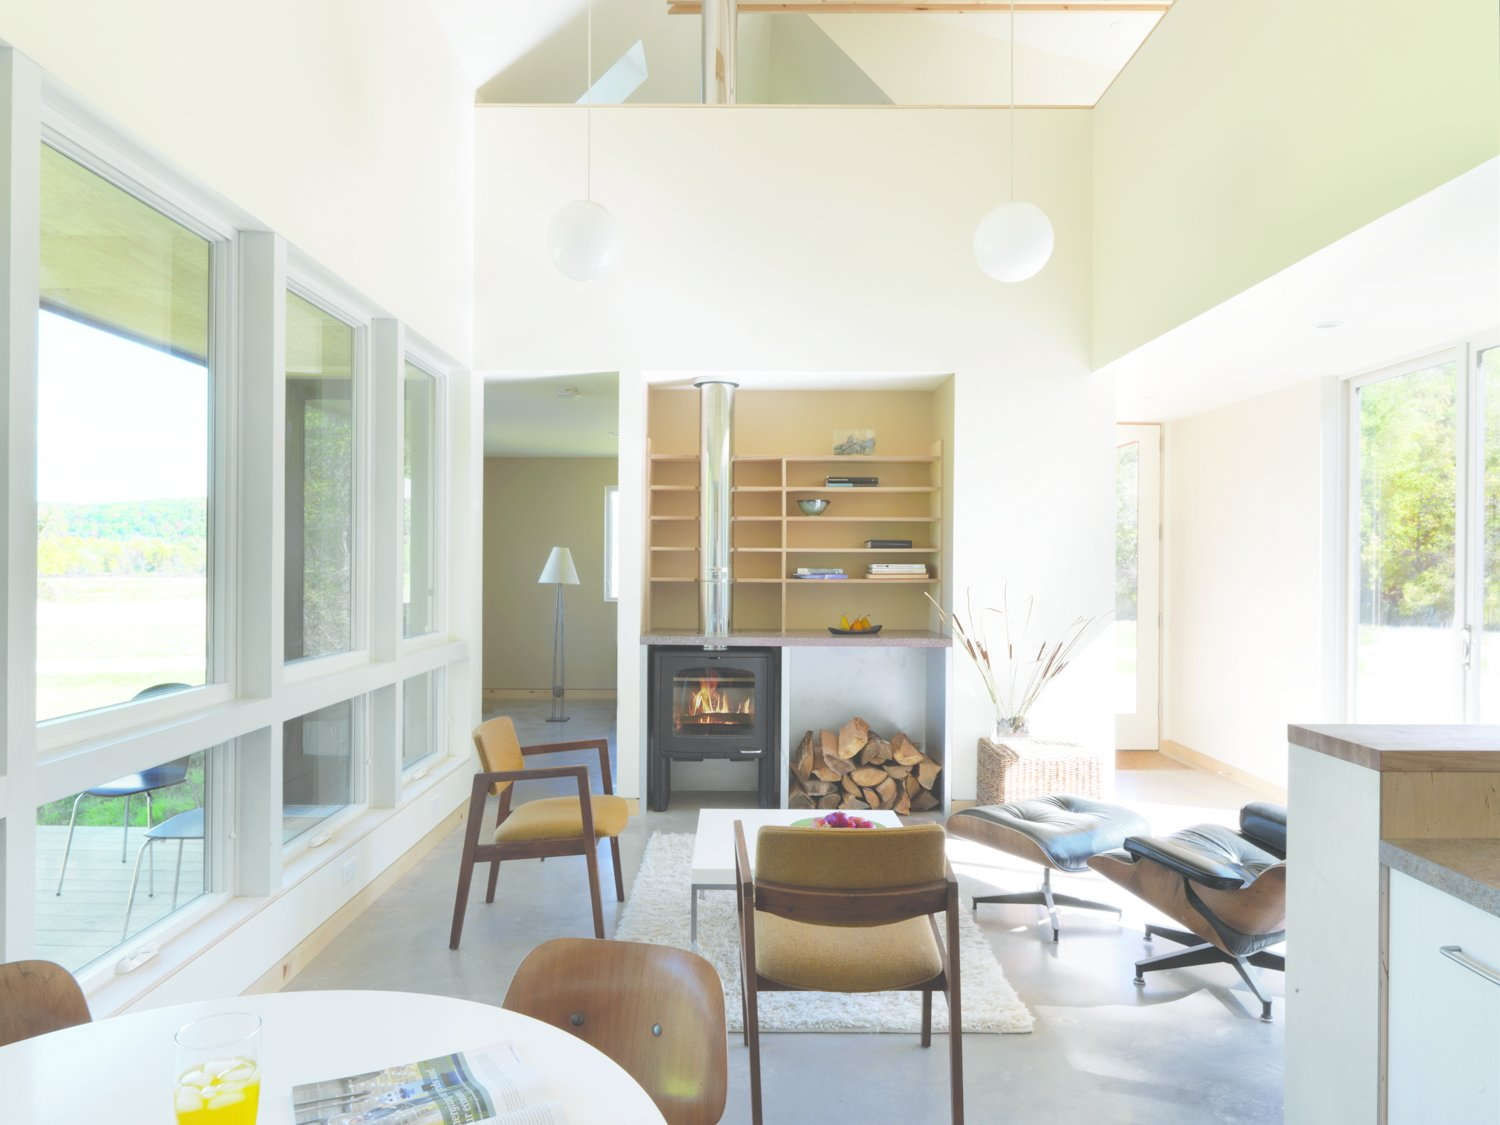 The house is a simple singular volume of the farmhouse is strategic: its one central space insulates to provide a place of refuge from New England's cold winters.  Photo 3 of 8 in McLeod Kredell: Locavore Architects in Vermont